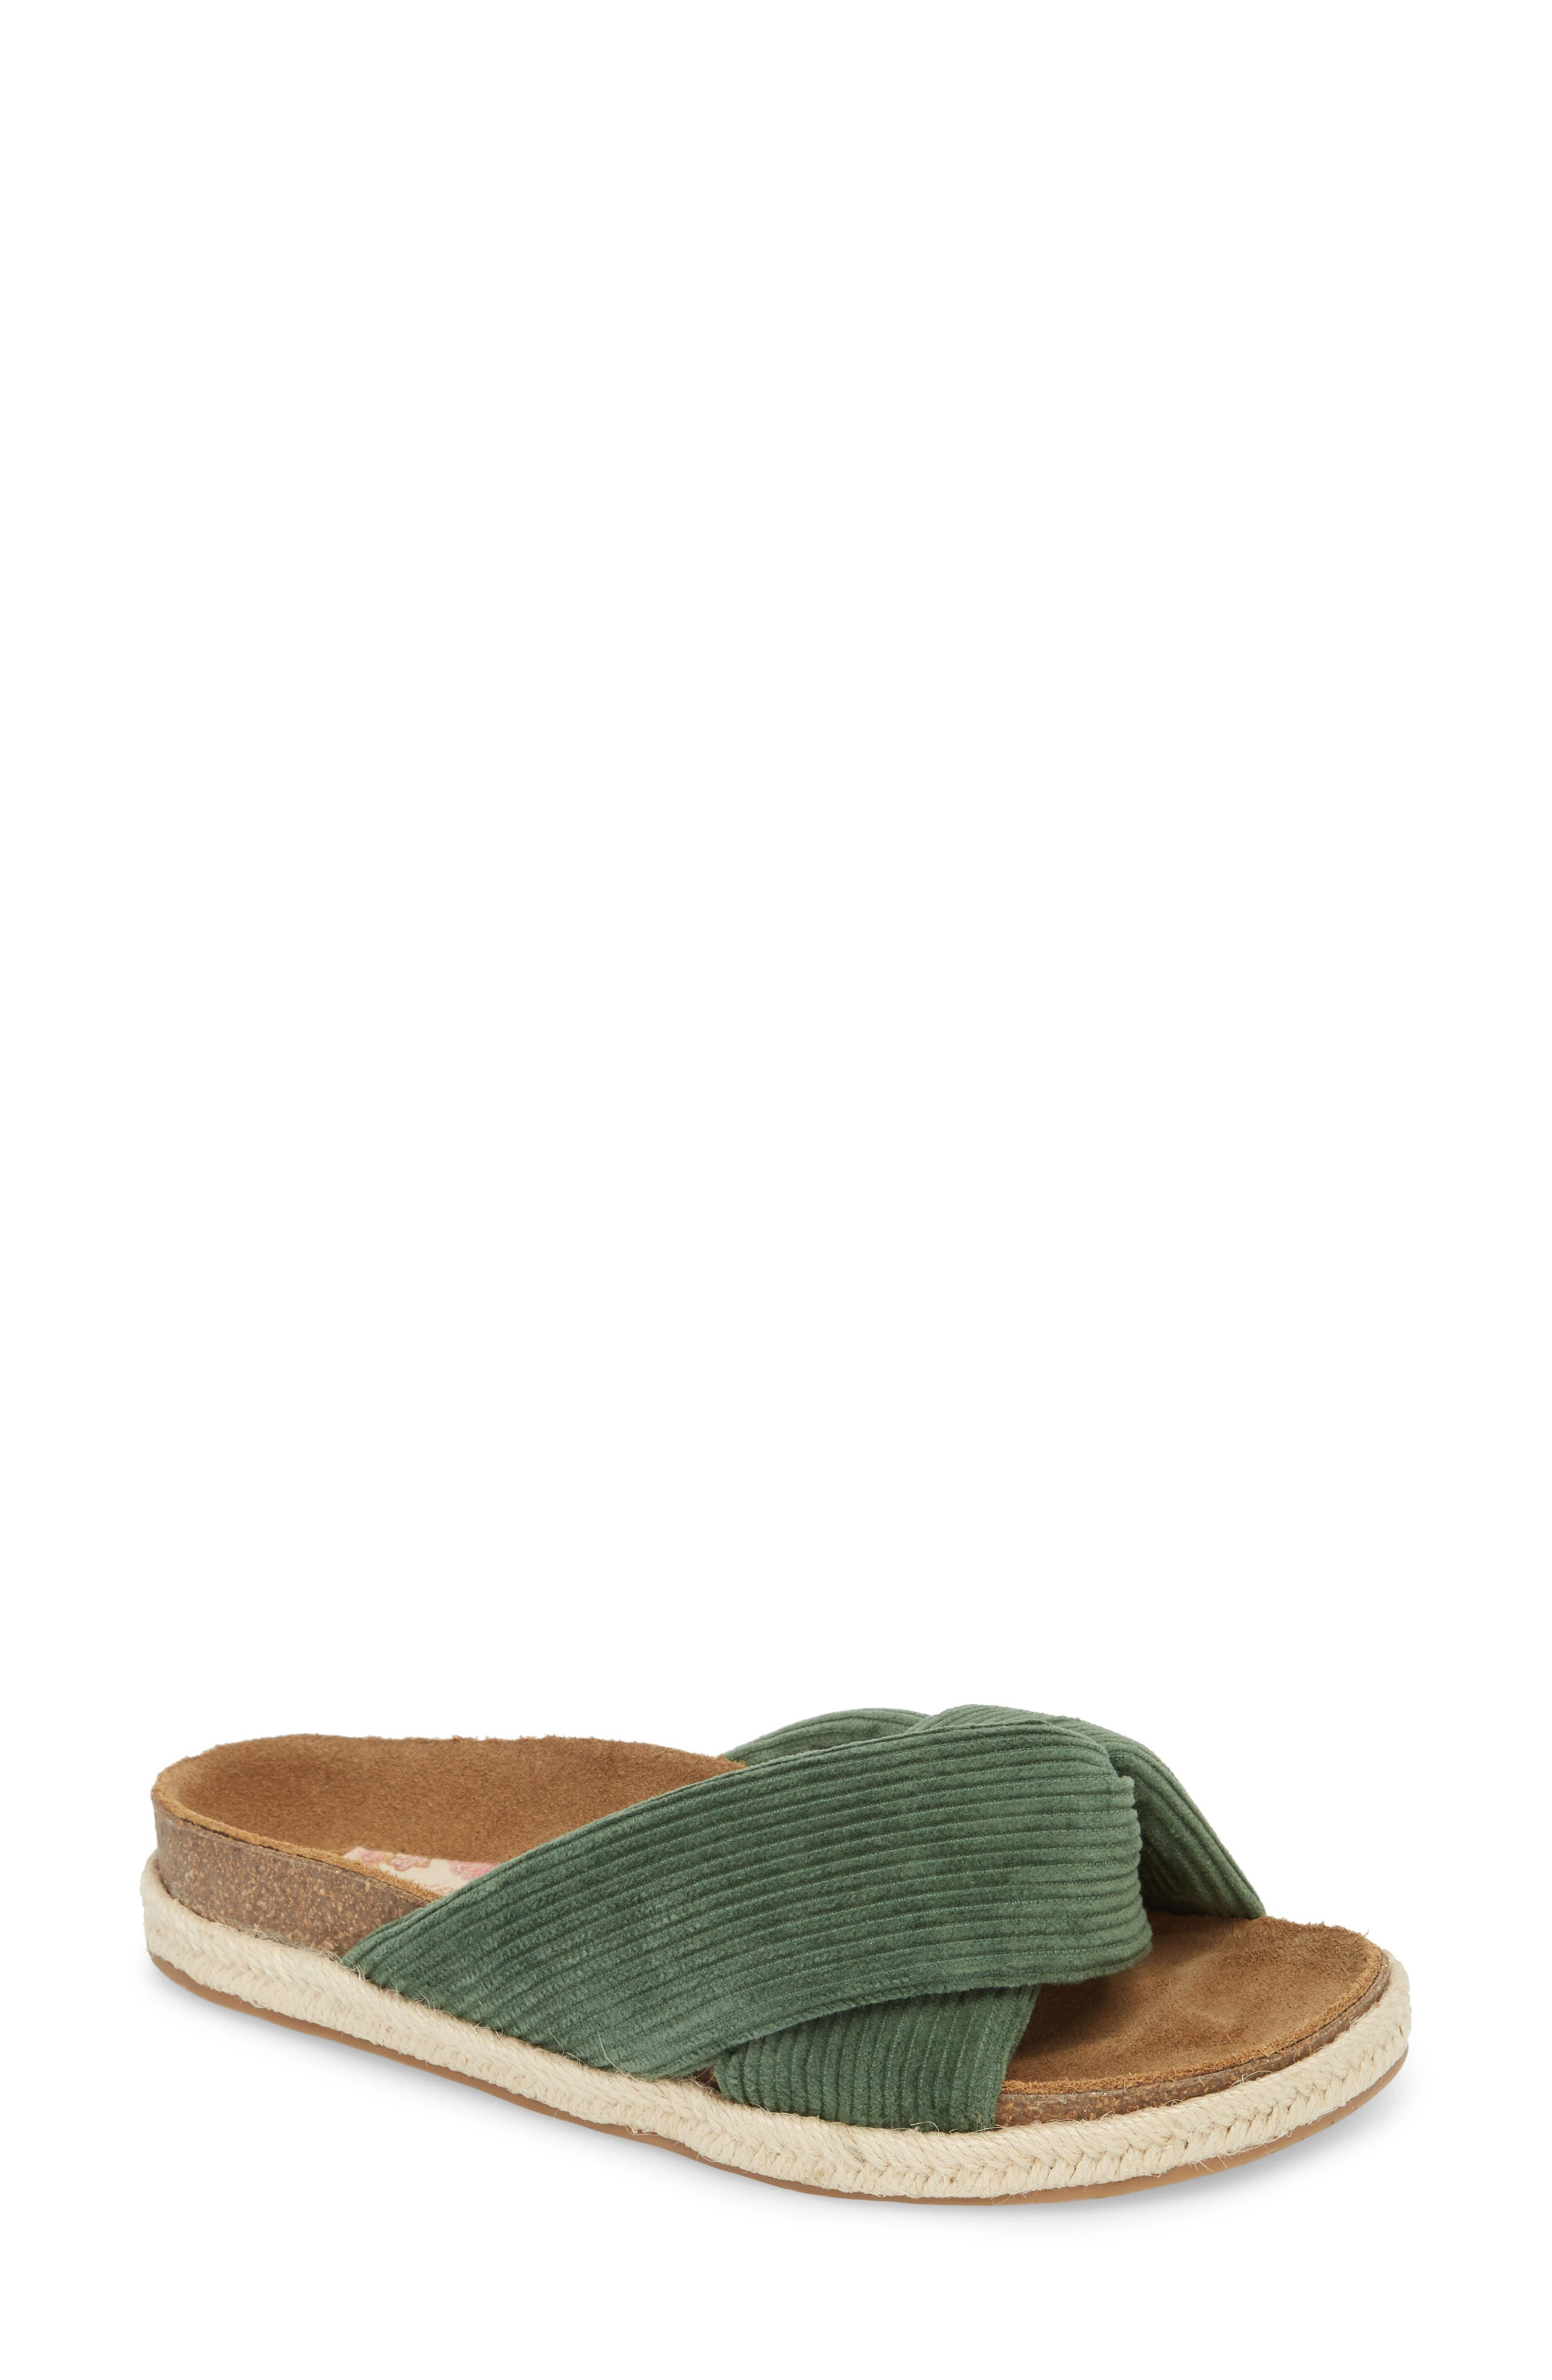 Move Over Flat Sandal,                             Main thumbnail 1, color,                             OLIVE